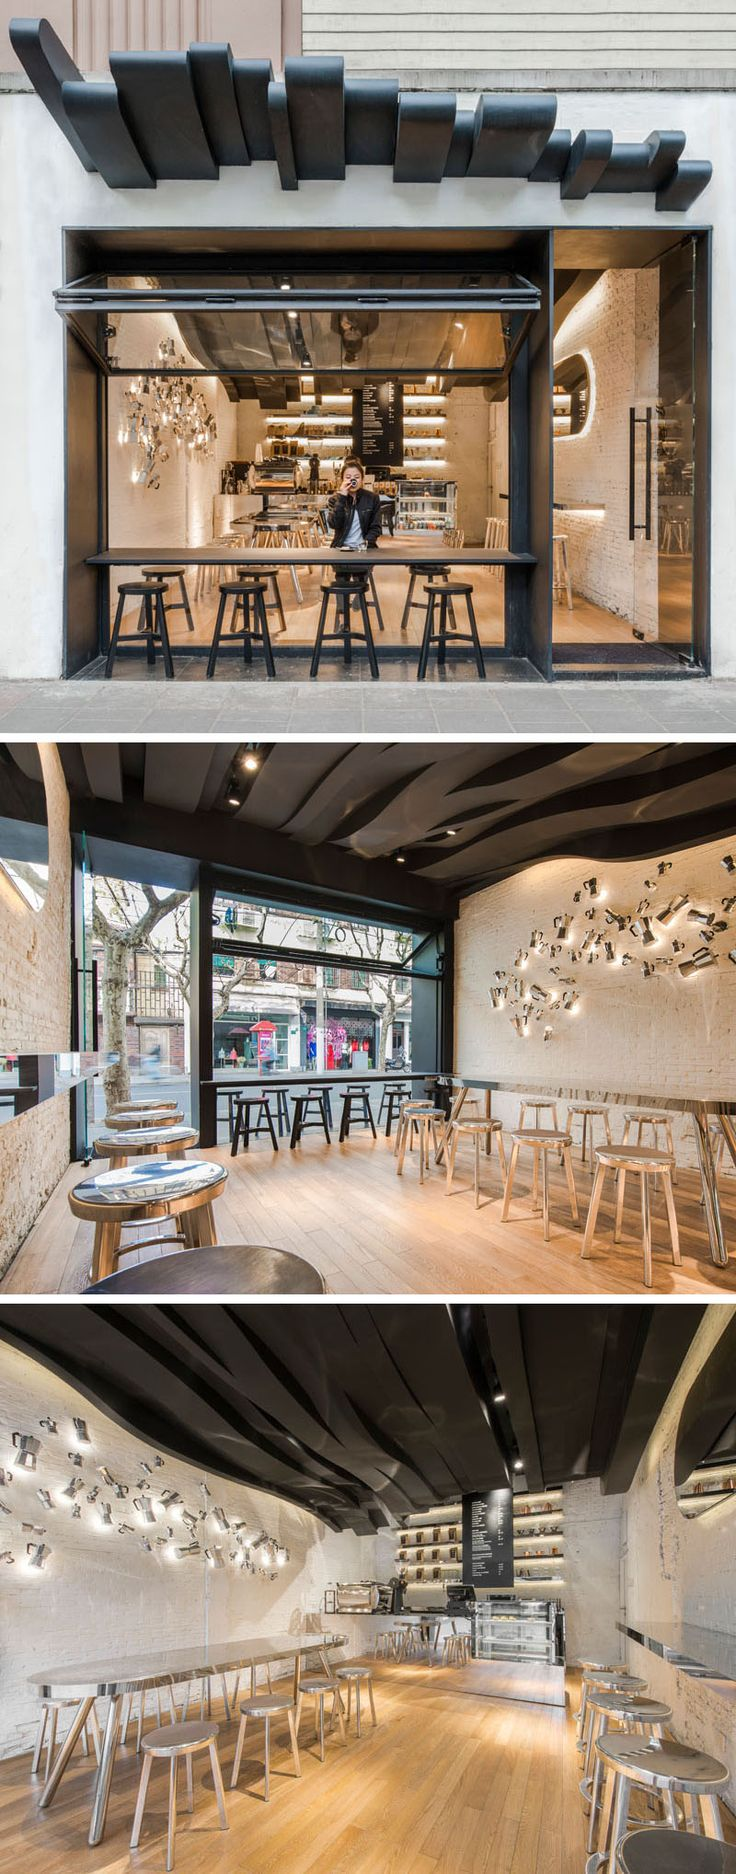 10 Unique Coffee Shops In Asia / Alberto Caiola designed Fumi Coffee, a cafe in Shanghai, China, designed to draw people into it by grabbing their attention with a sculptural ceiling that flows from the outside all the way to the back of the cafe and was inspired by the aromatic vapors of coffee.